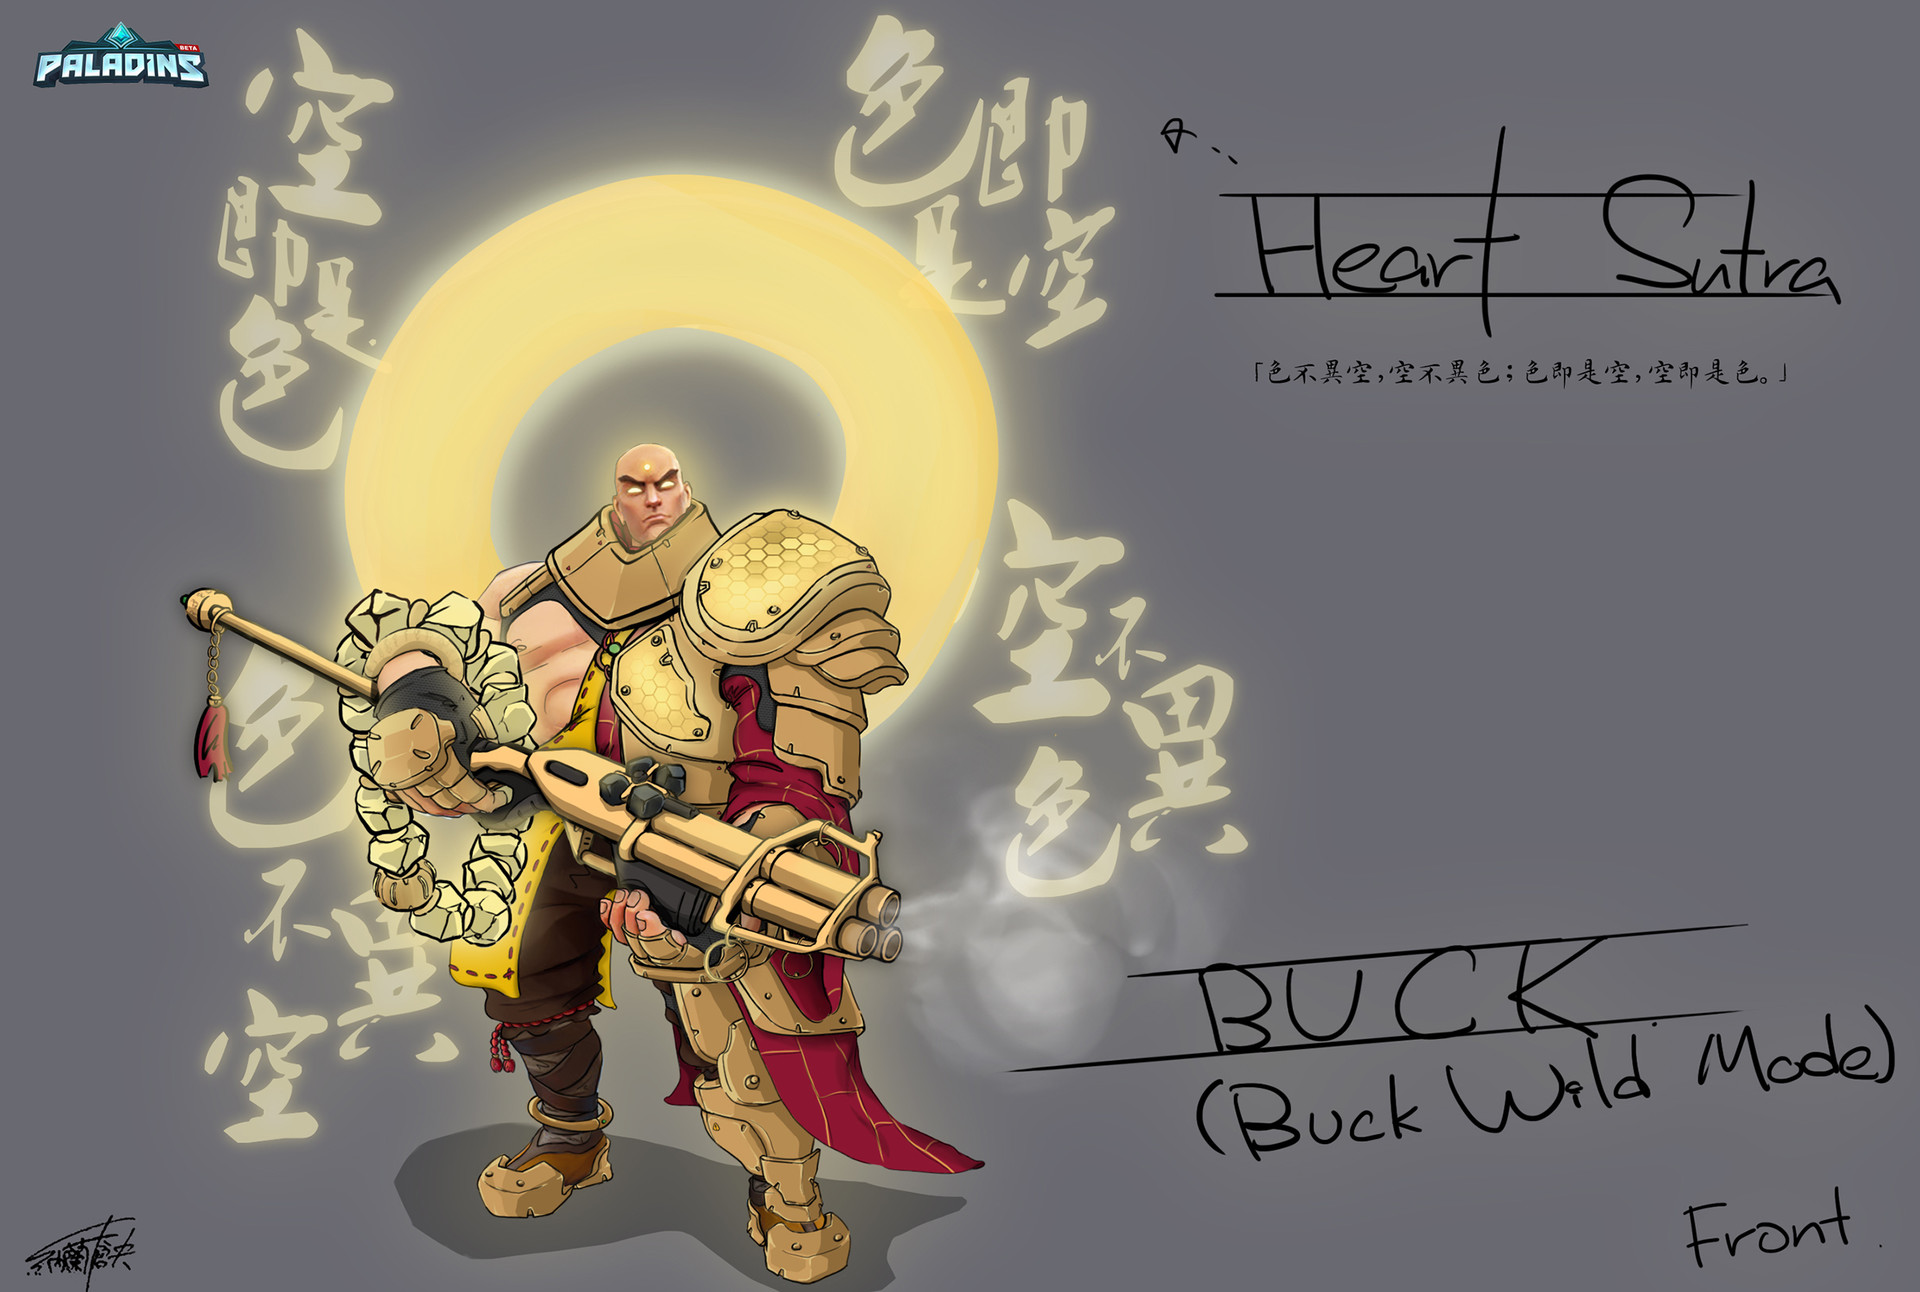 Paladins: Champions of the Real_Buck Abbot (Buddhism) Skin ConceptArt - Buck Wild Mode